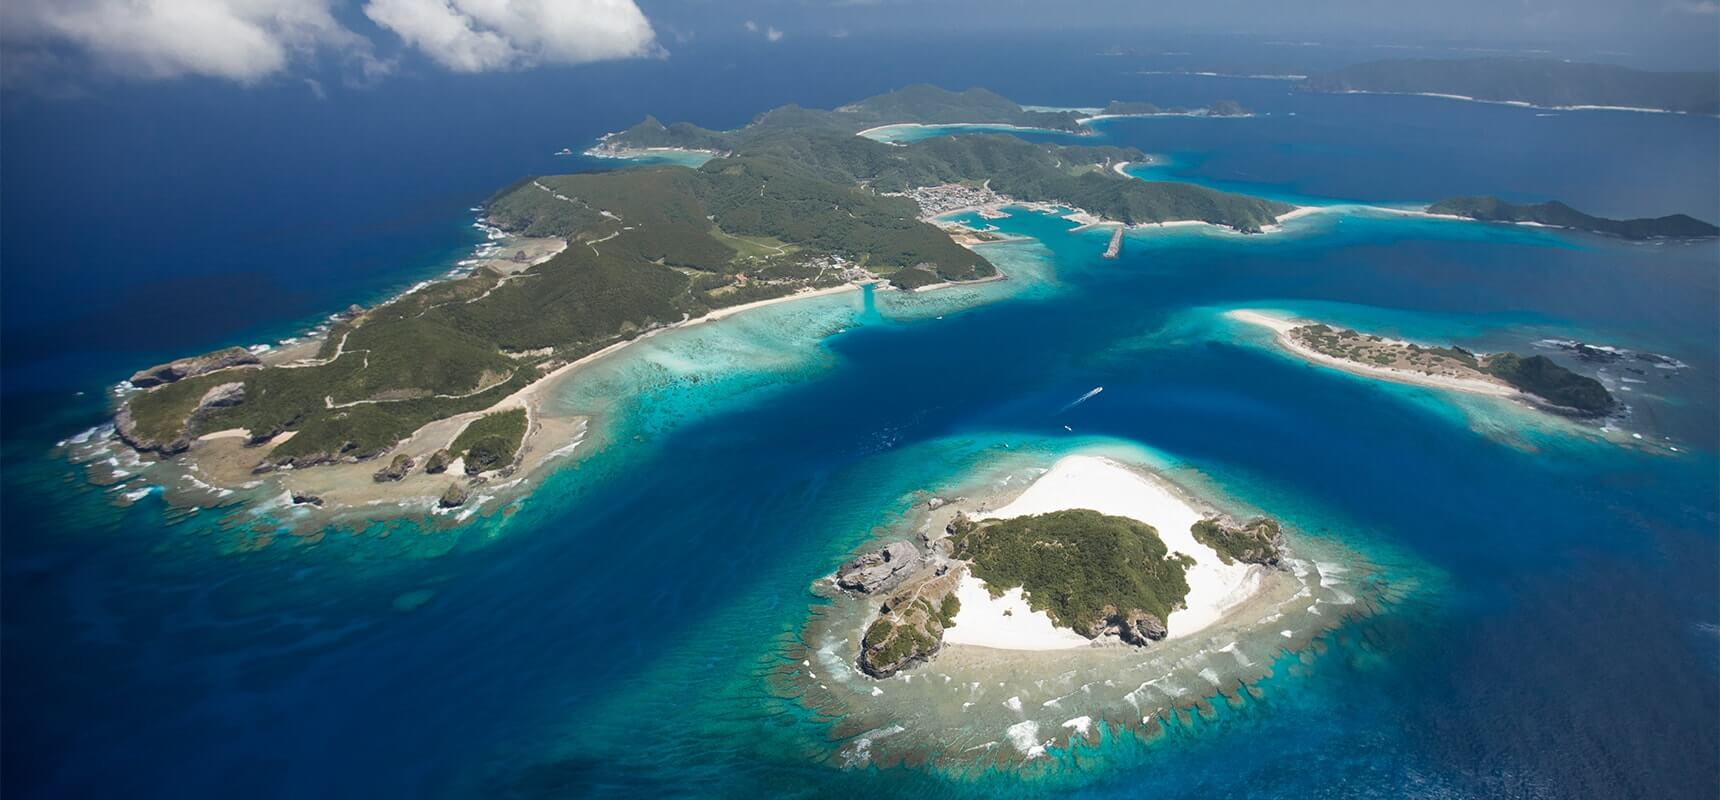 One day trip from Naha to the ocean paradise Kerama Islands